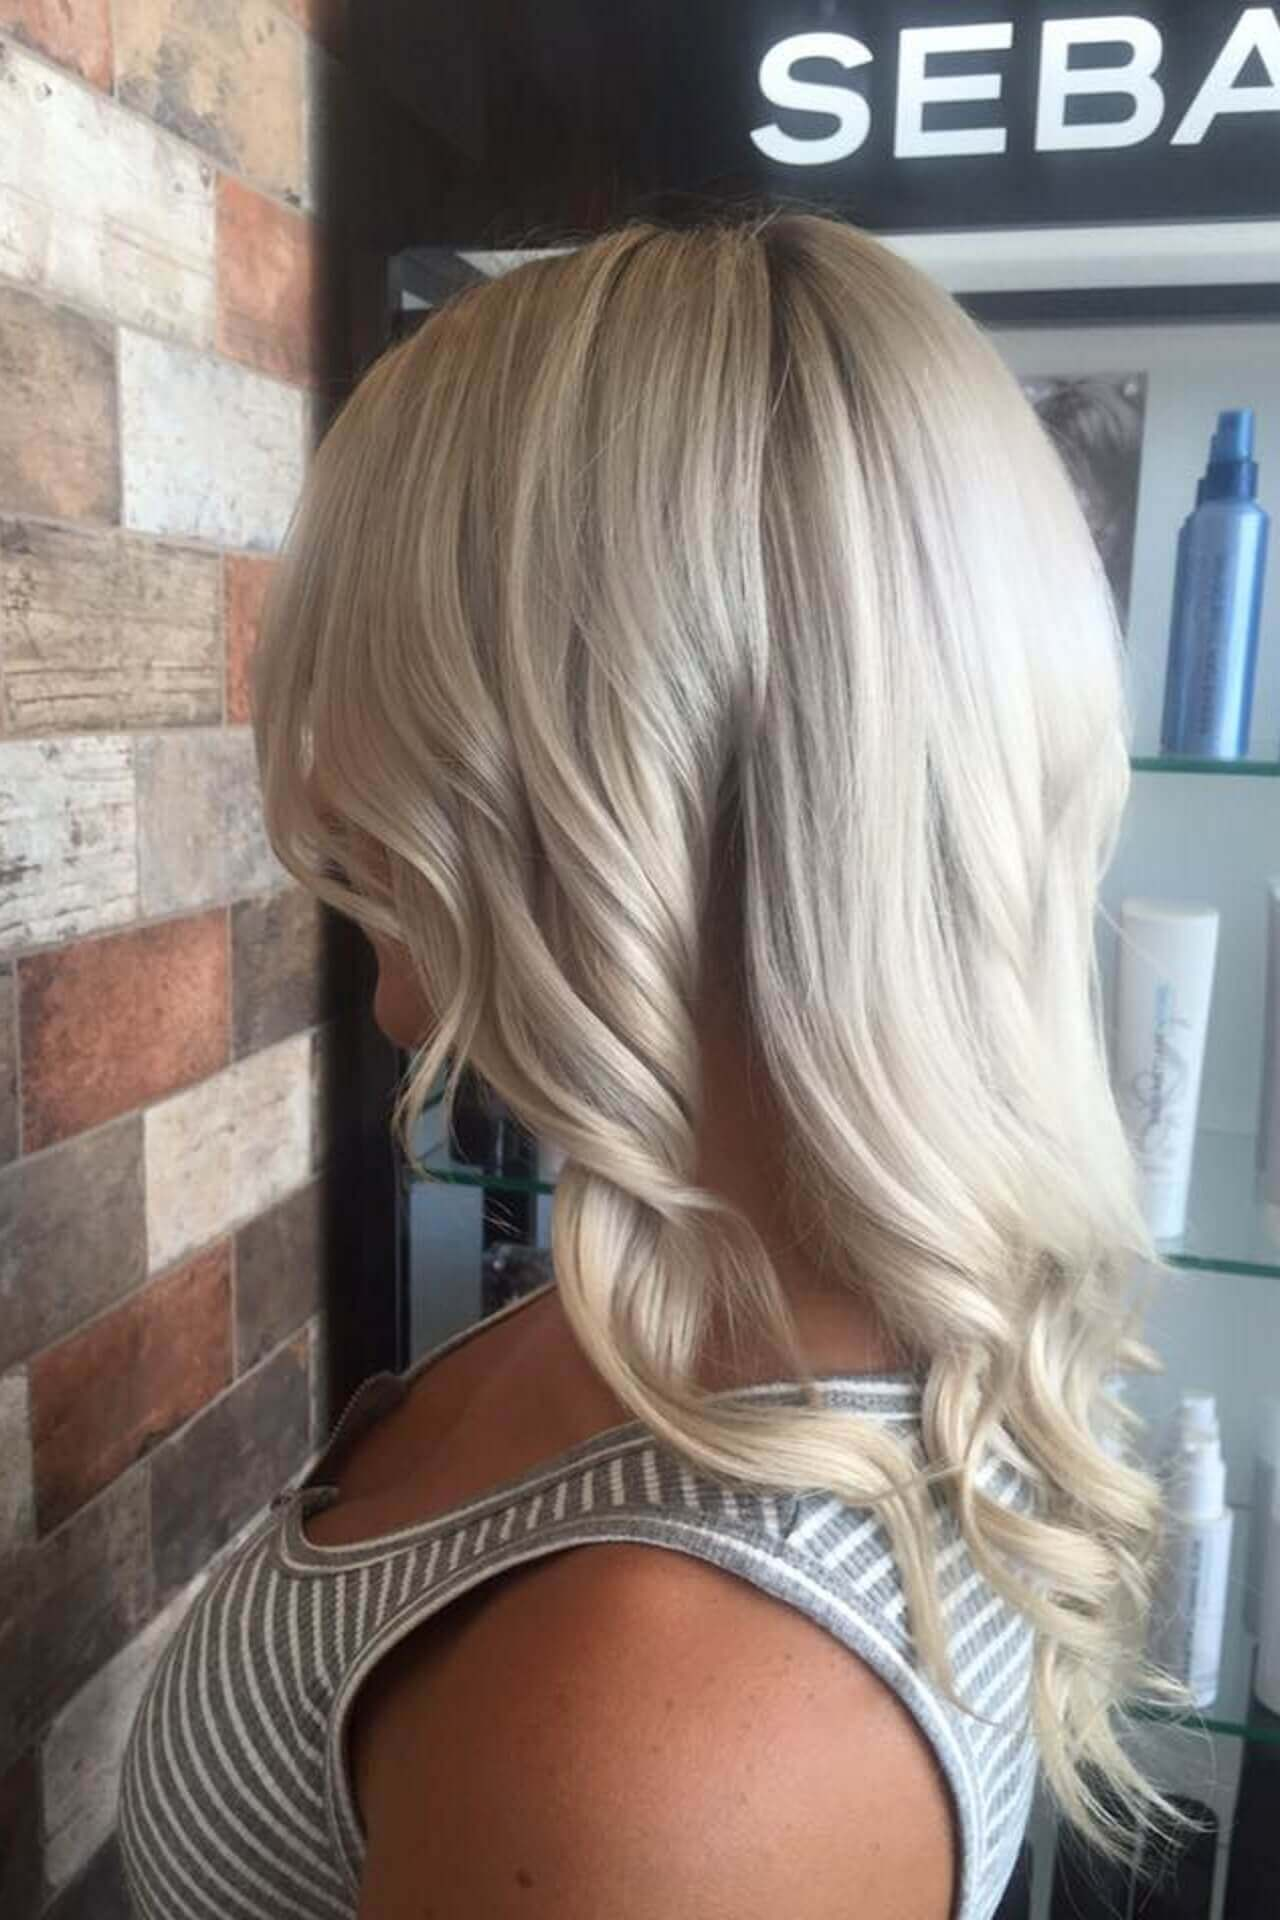 Samantha Jones Hair Co Our Work Image Gallery - White Curly Natural Hair Below the Shoulder V Cut